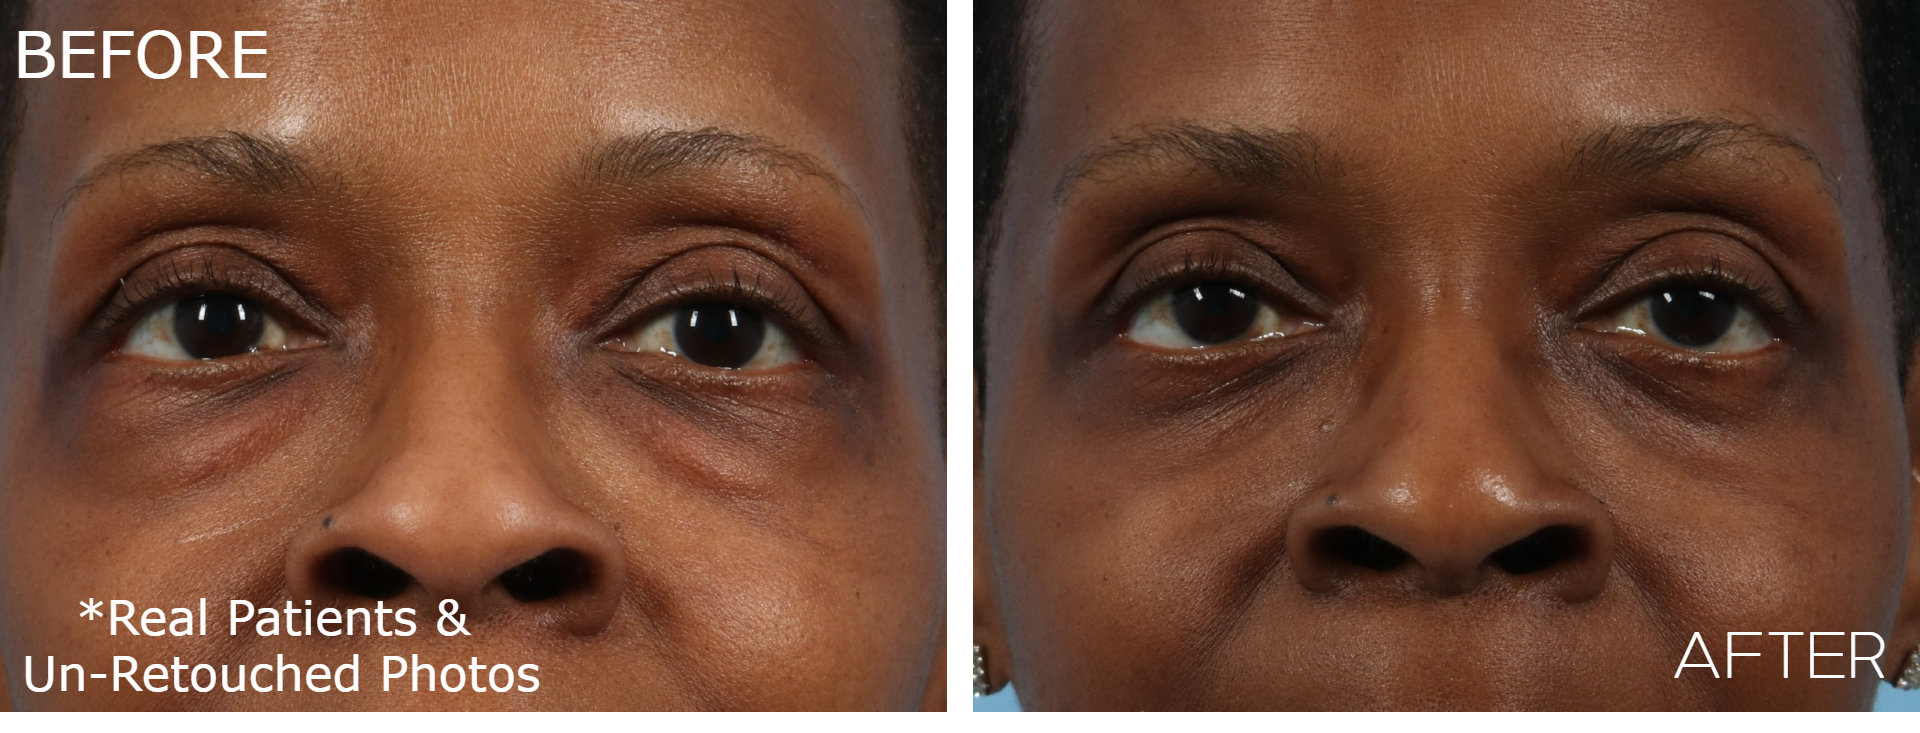 Case-1036-Blepharoplasty-Front-Before-and-After